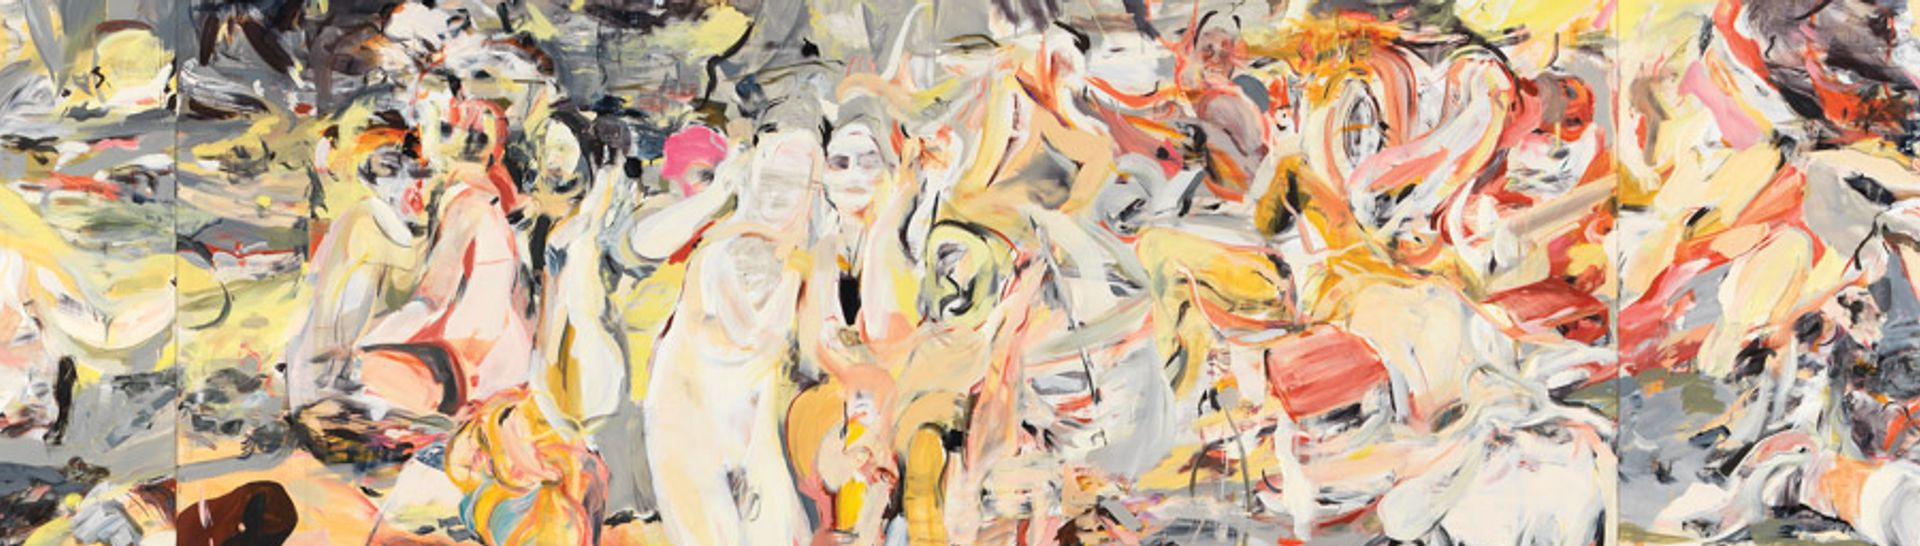 Cecily Brown's Where, When, How Often and with Whom (2017) © Louisiana Museum of Modern Art; courtesy of the artist